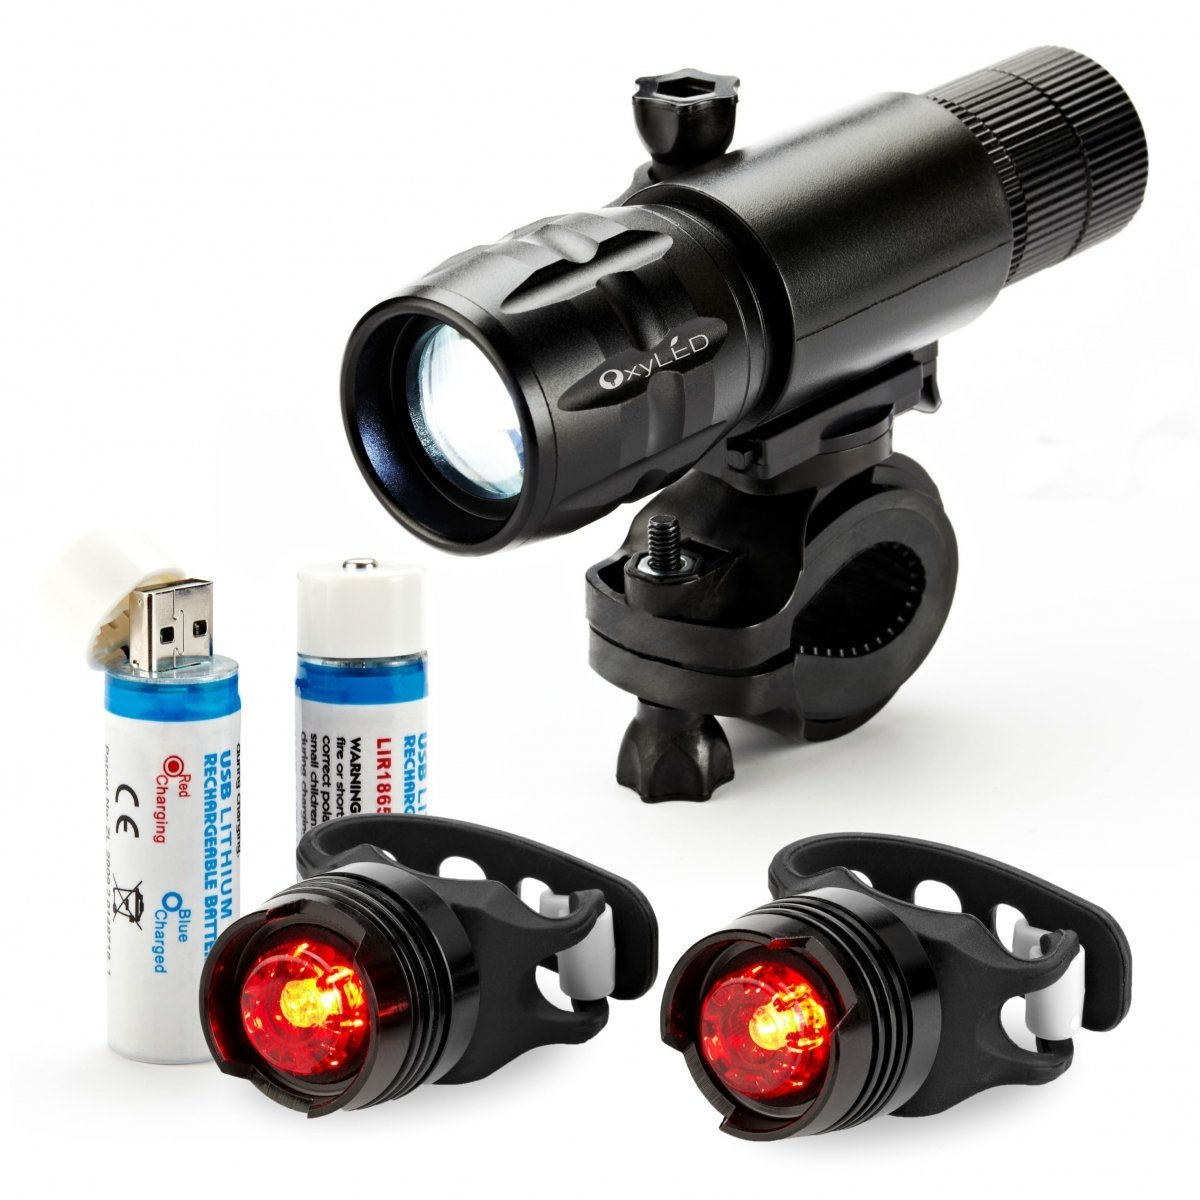 1c989bc0281 Get Quotations · OxyLED Bike Light